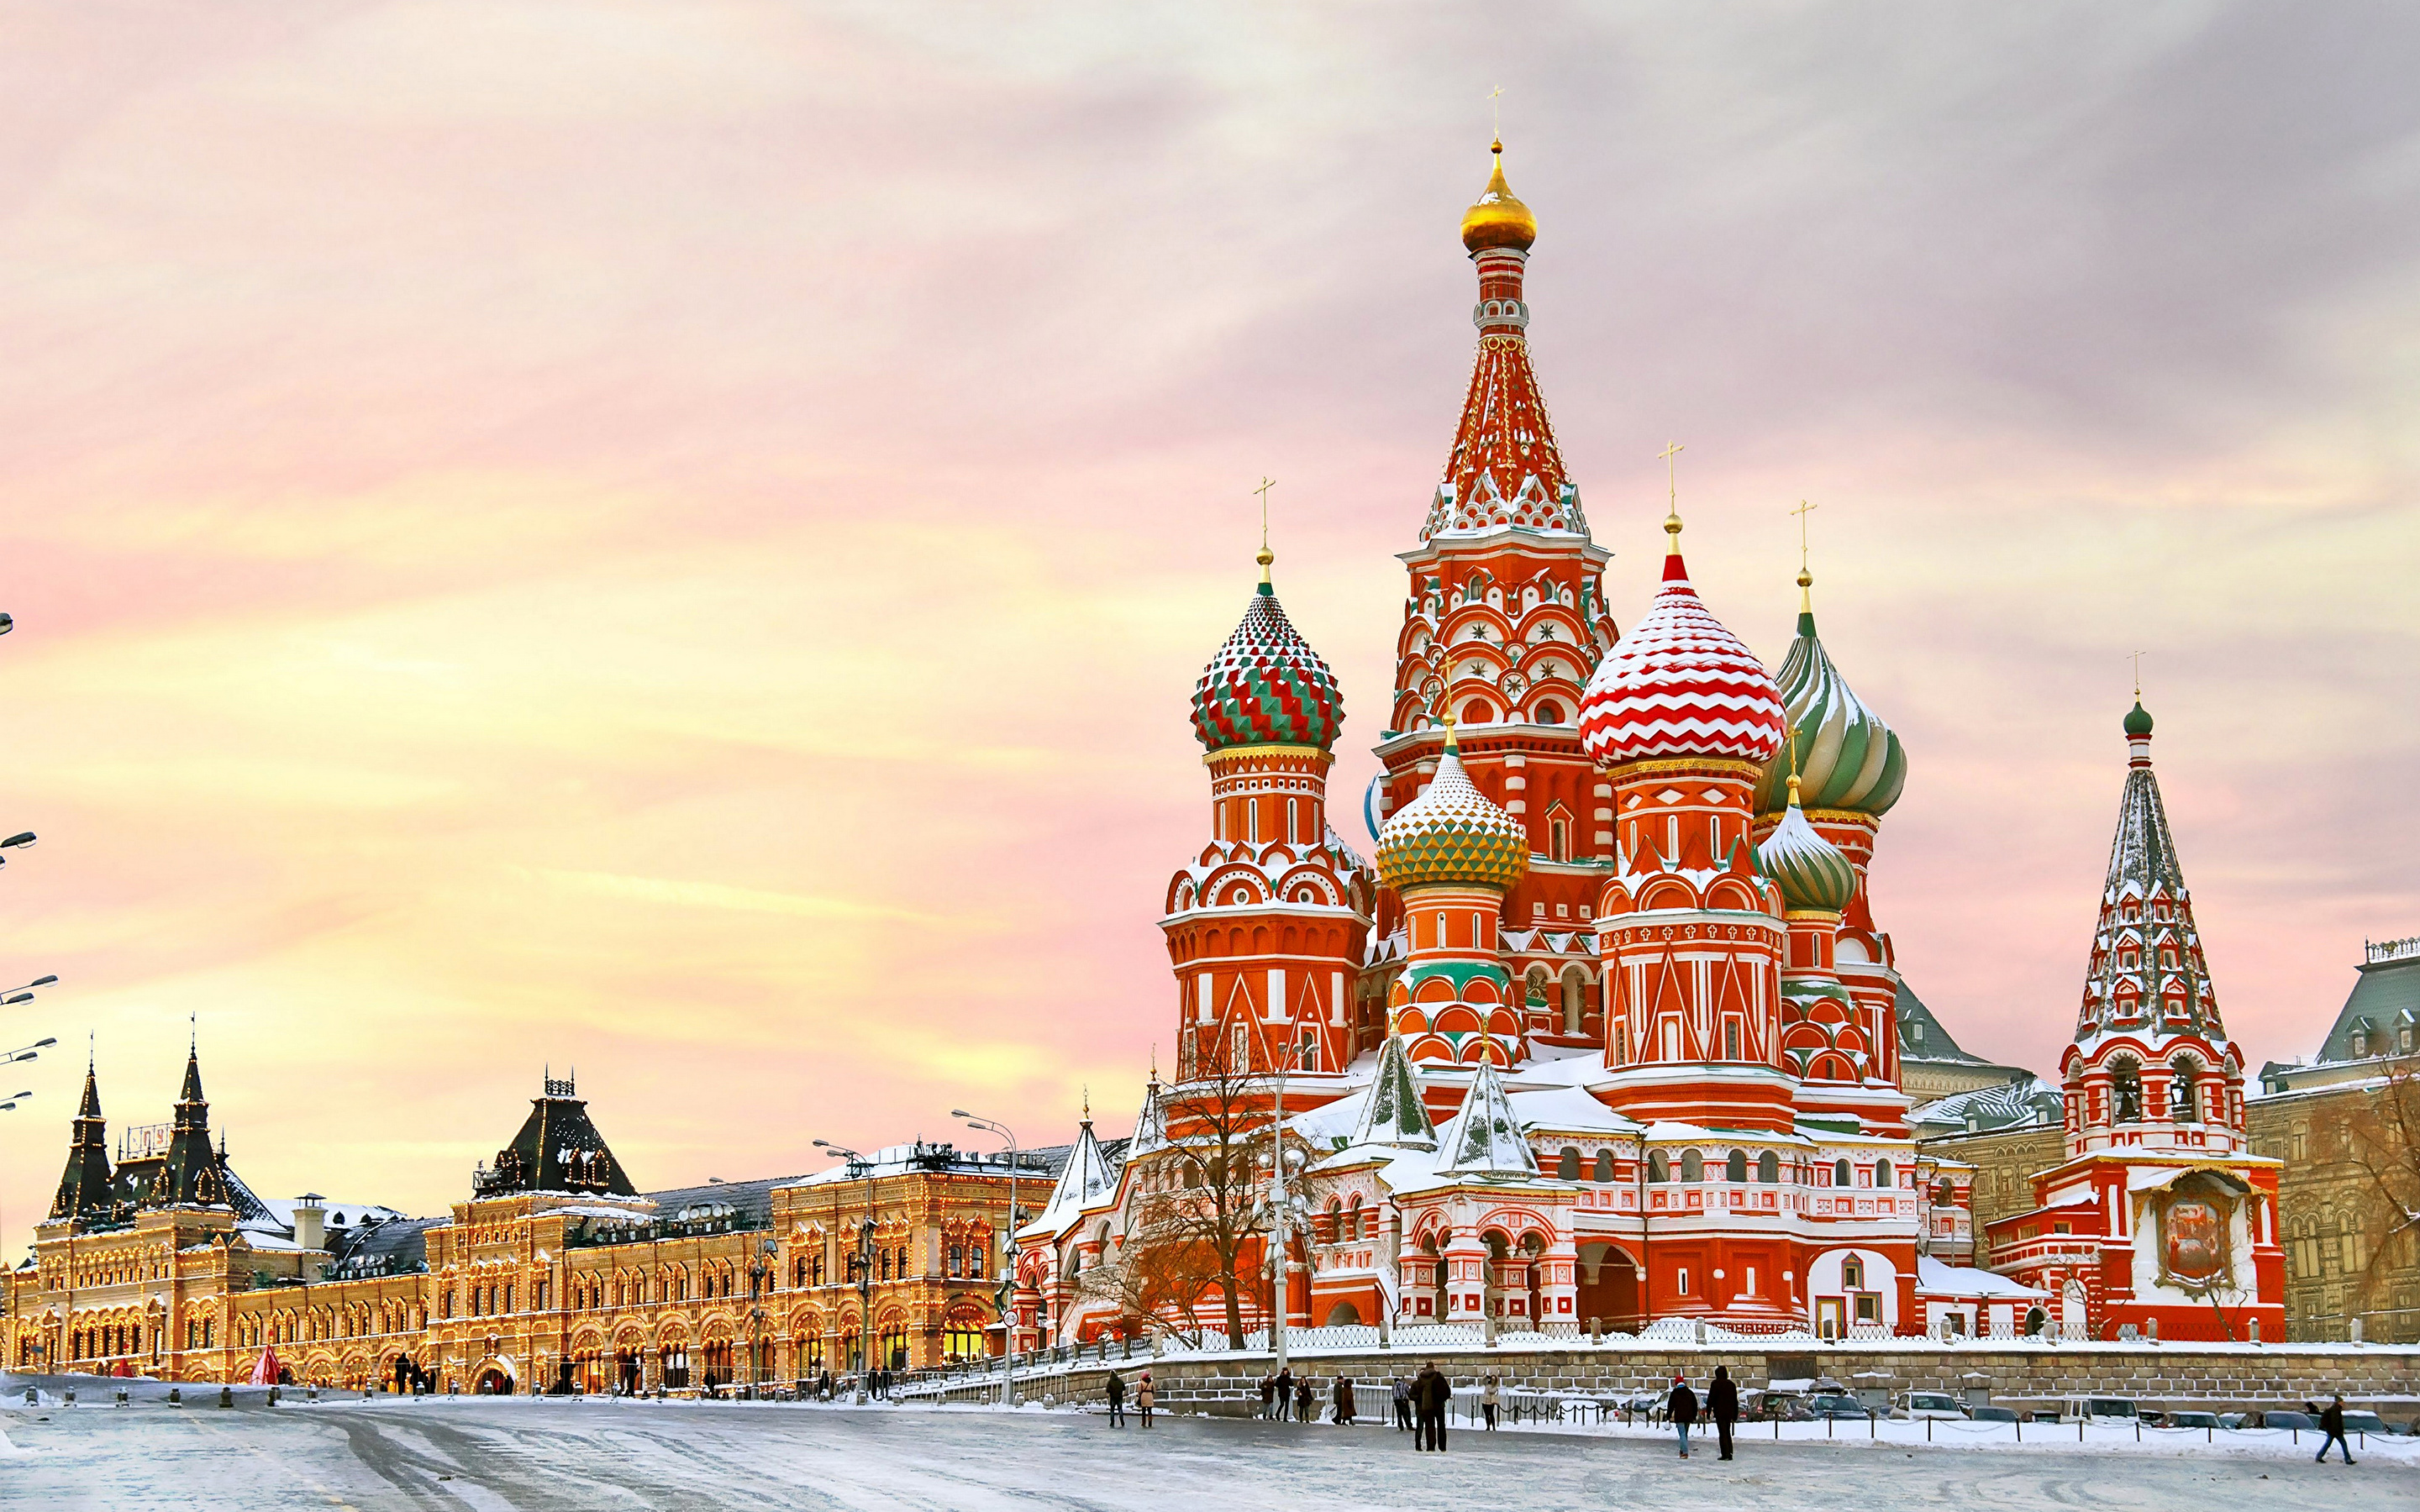 Most Stunning Buildings in the World Most Stunning Buildings in the World The Most Stunning Buildings in the World According to Lonely Planet  Russia Moscow Temples 467291